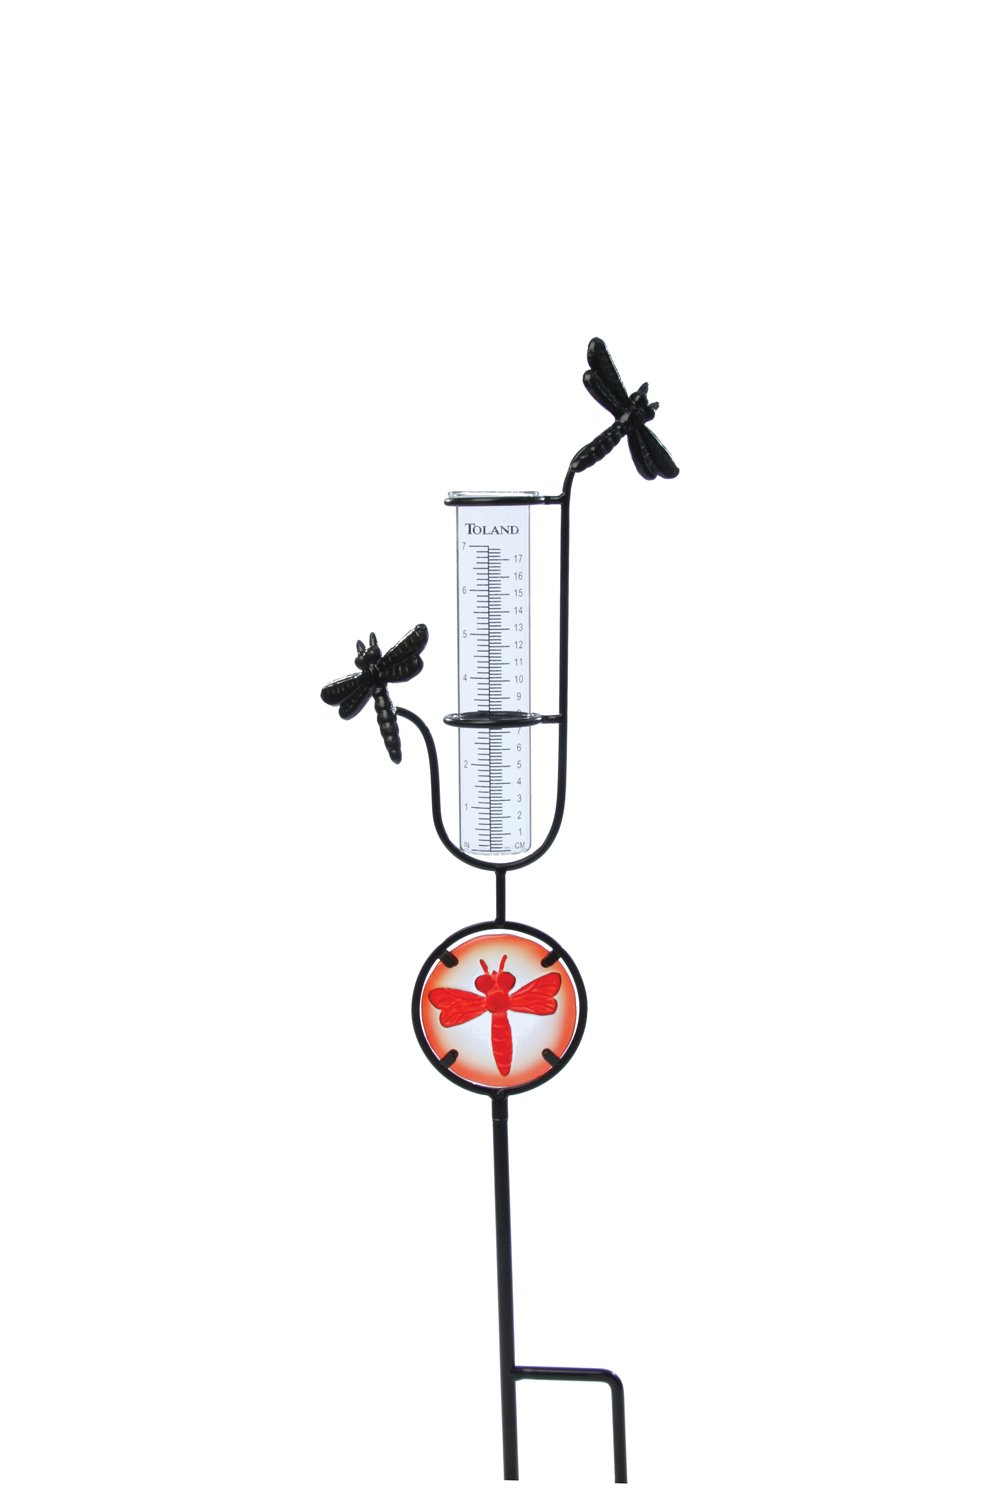 Toland Home Garden Dragonfly Decorative Outdoor Garden Stake Rain Gauge Statue with Glass Udometer for Yards, Gardens, and Planters 218187